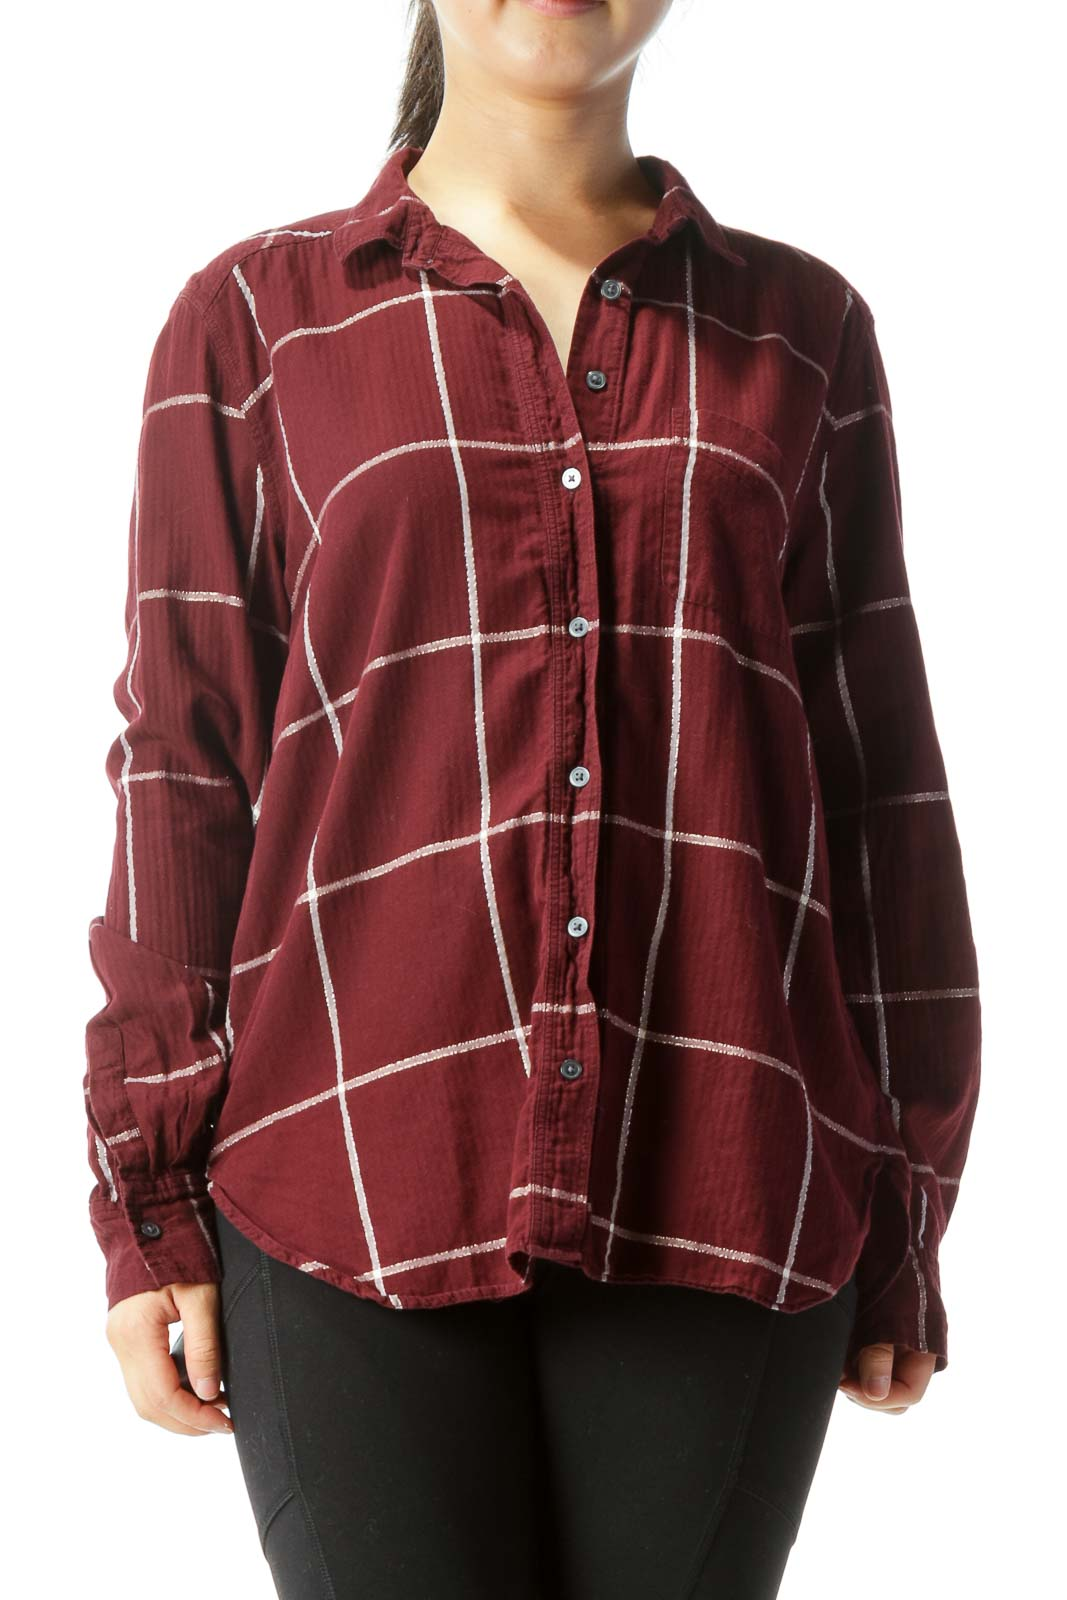 Burgundy and White Plaid Long-Sleeve Button Down With Gold Detailing